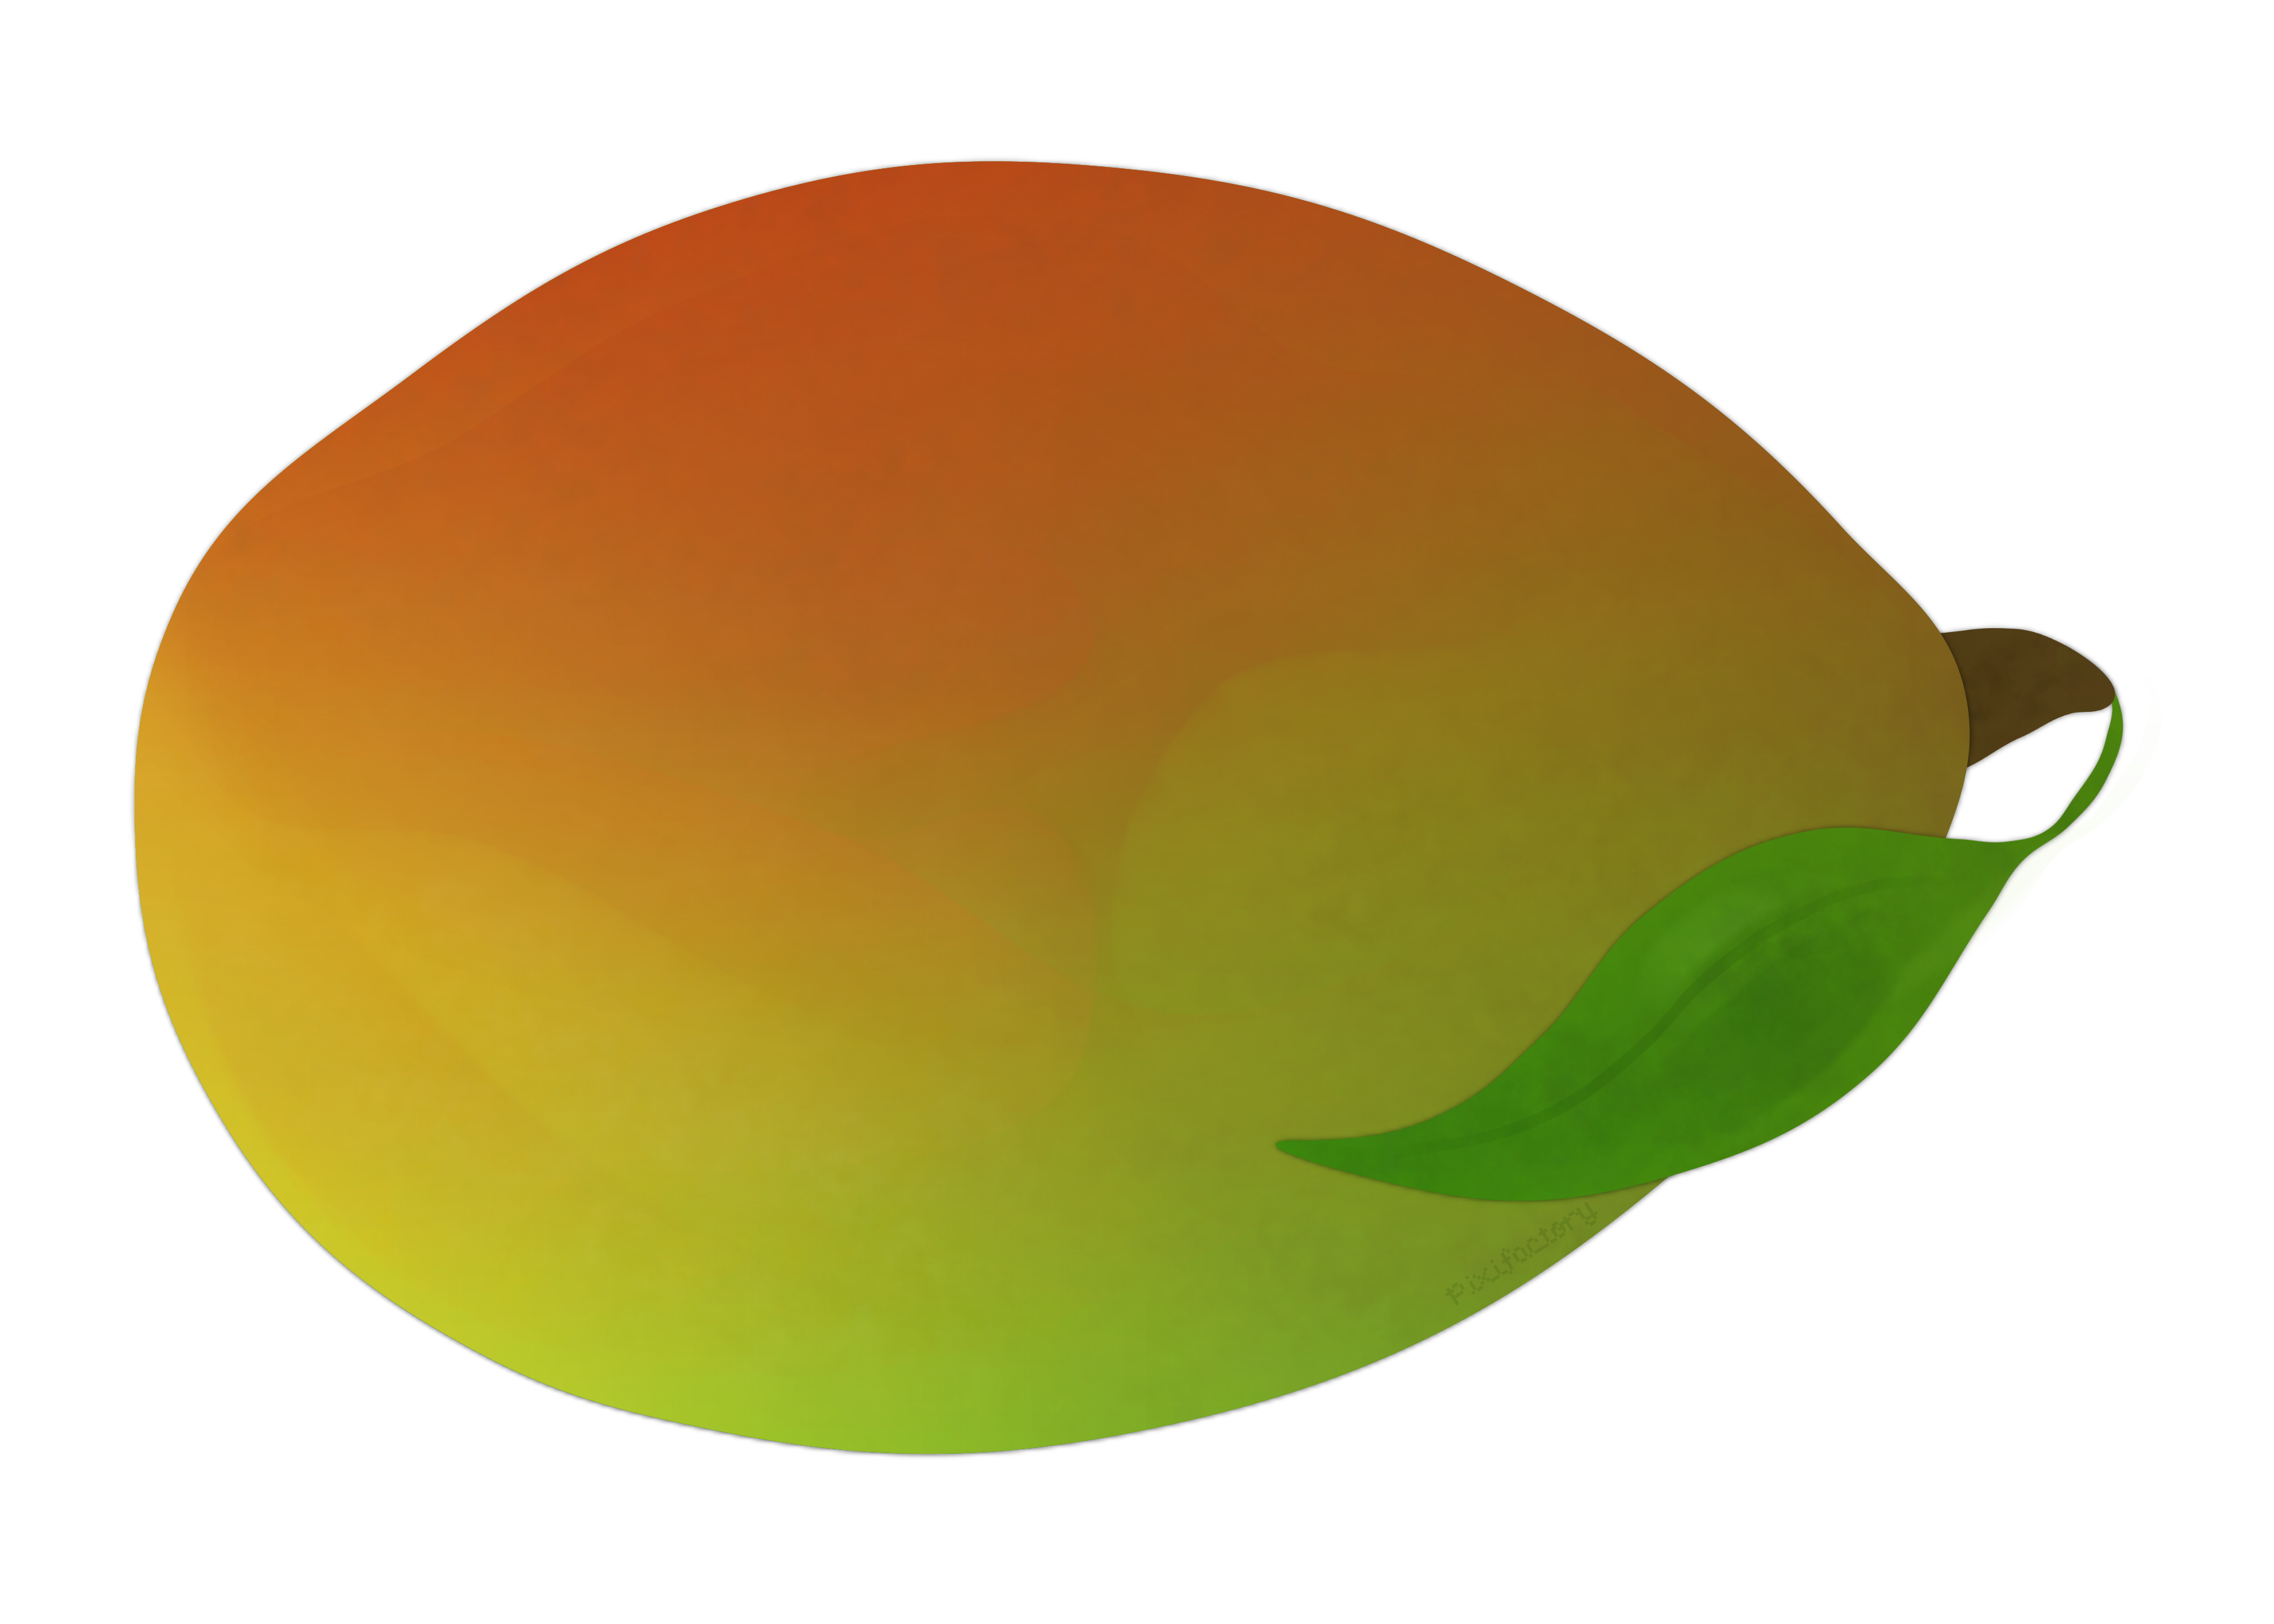 Mango clipart transparent background. Png image purepng free